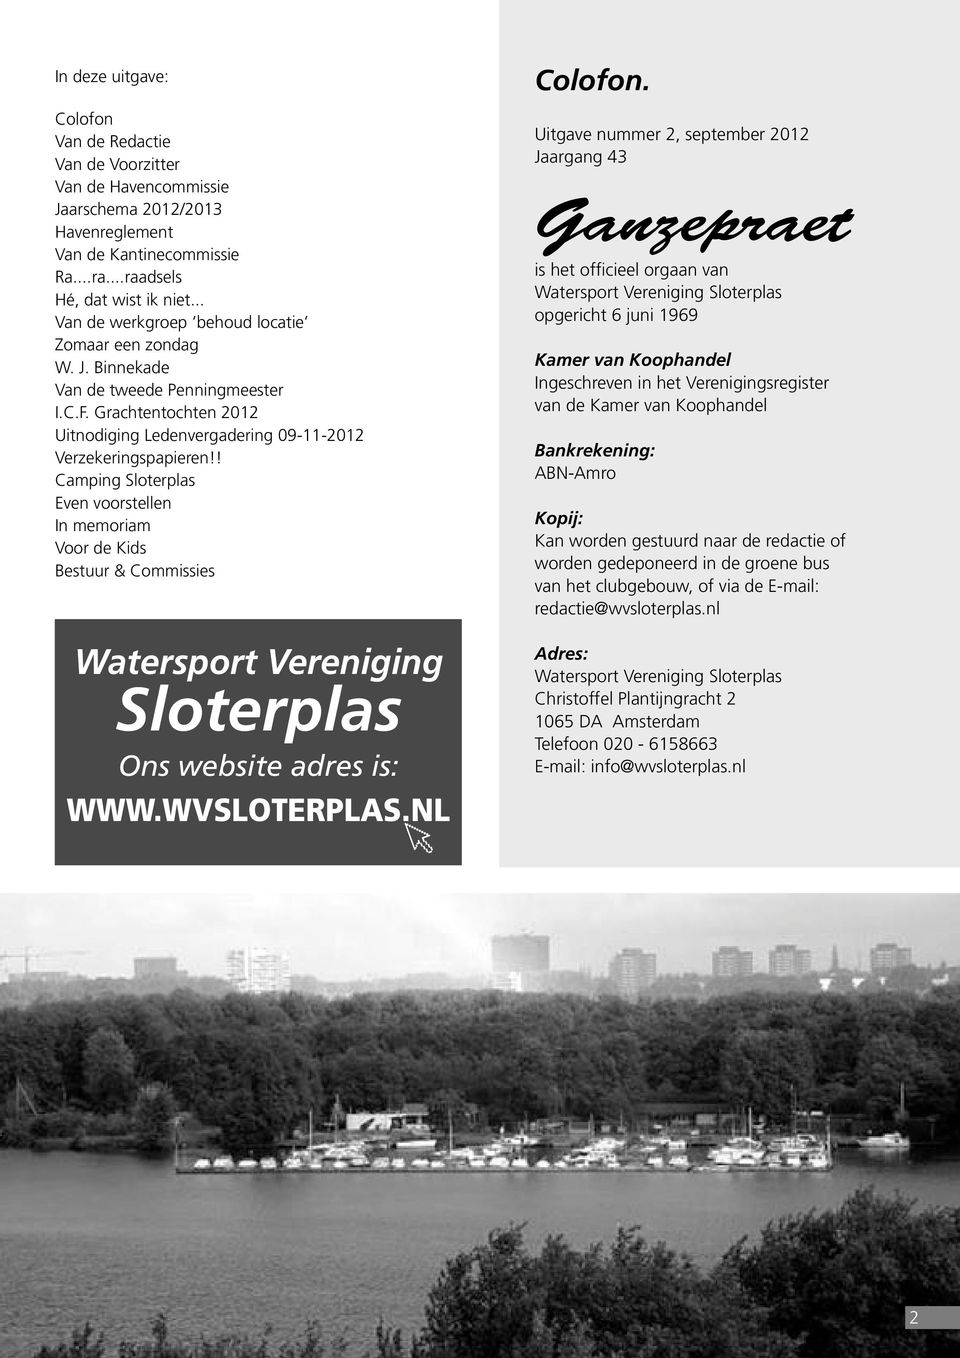 ! Camping Sloterplas Even voorstellen In memoriam Voor de Kids Bestuur & Commissies Watersport Vereniging Sloterplas Ons website adres is: WWW.WVSLOTERPLAS.NL Colofon.